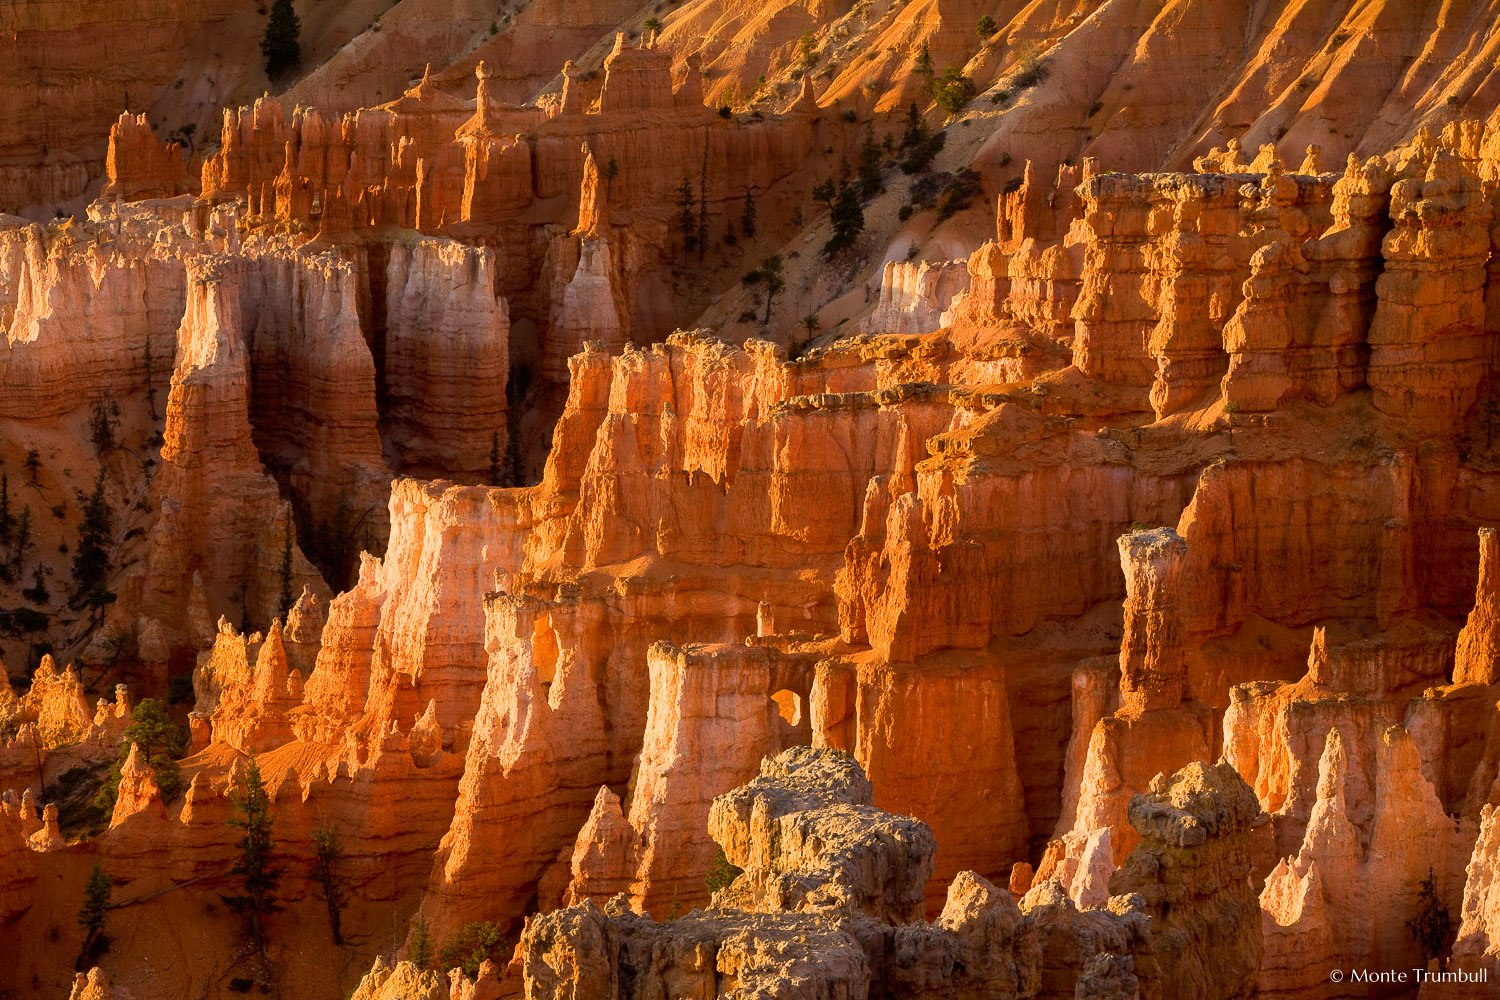 MT-20071107-072538-0023-Edit-Utah-Bryce-Canyon-National-Park-spires-glow-sunrise.jpg